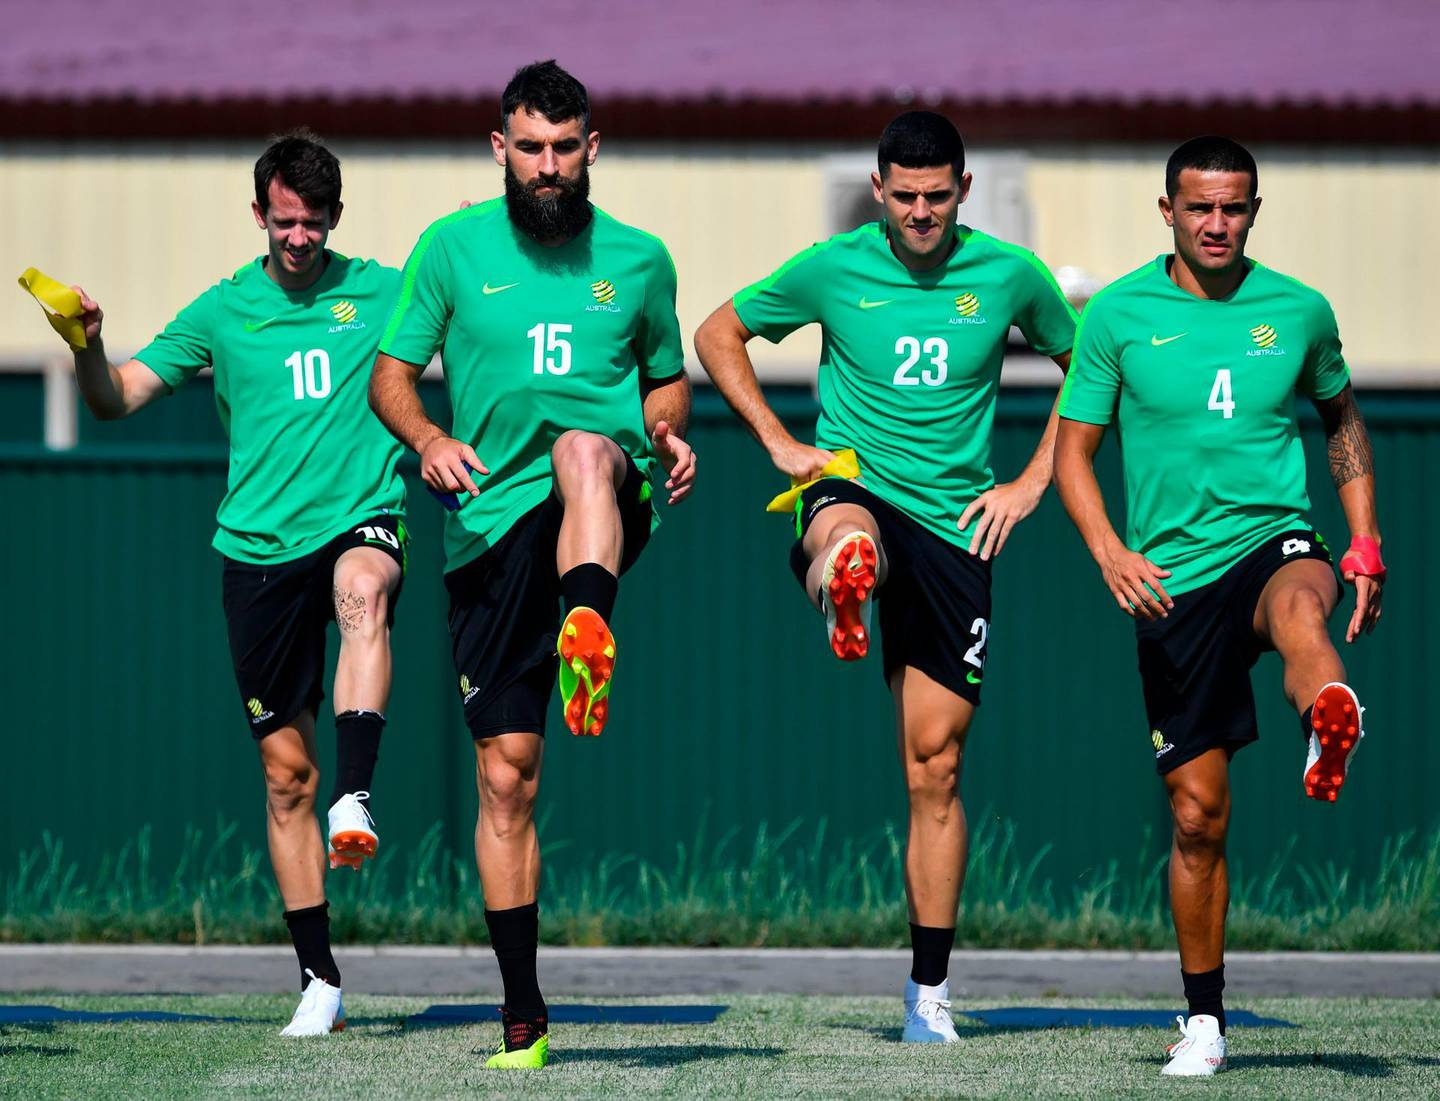 L to R, Australia's forward Robbie Kruse, Australia's midfielder Mile Jedinak, Australia's midfielder Tomas Rogic and Australia's forward Tim Cahill attend a training session at the Park Arena in Sochi on June 25, 2018, on the eve of the Russia 2018 FIFA World Cup Group C football match between Australia and Peru. / AFP / Nelson Almeida